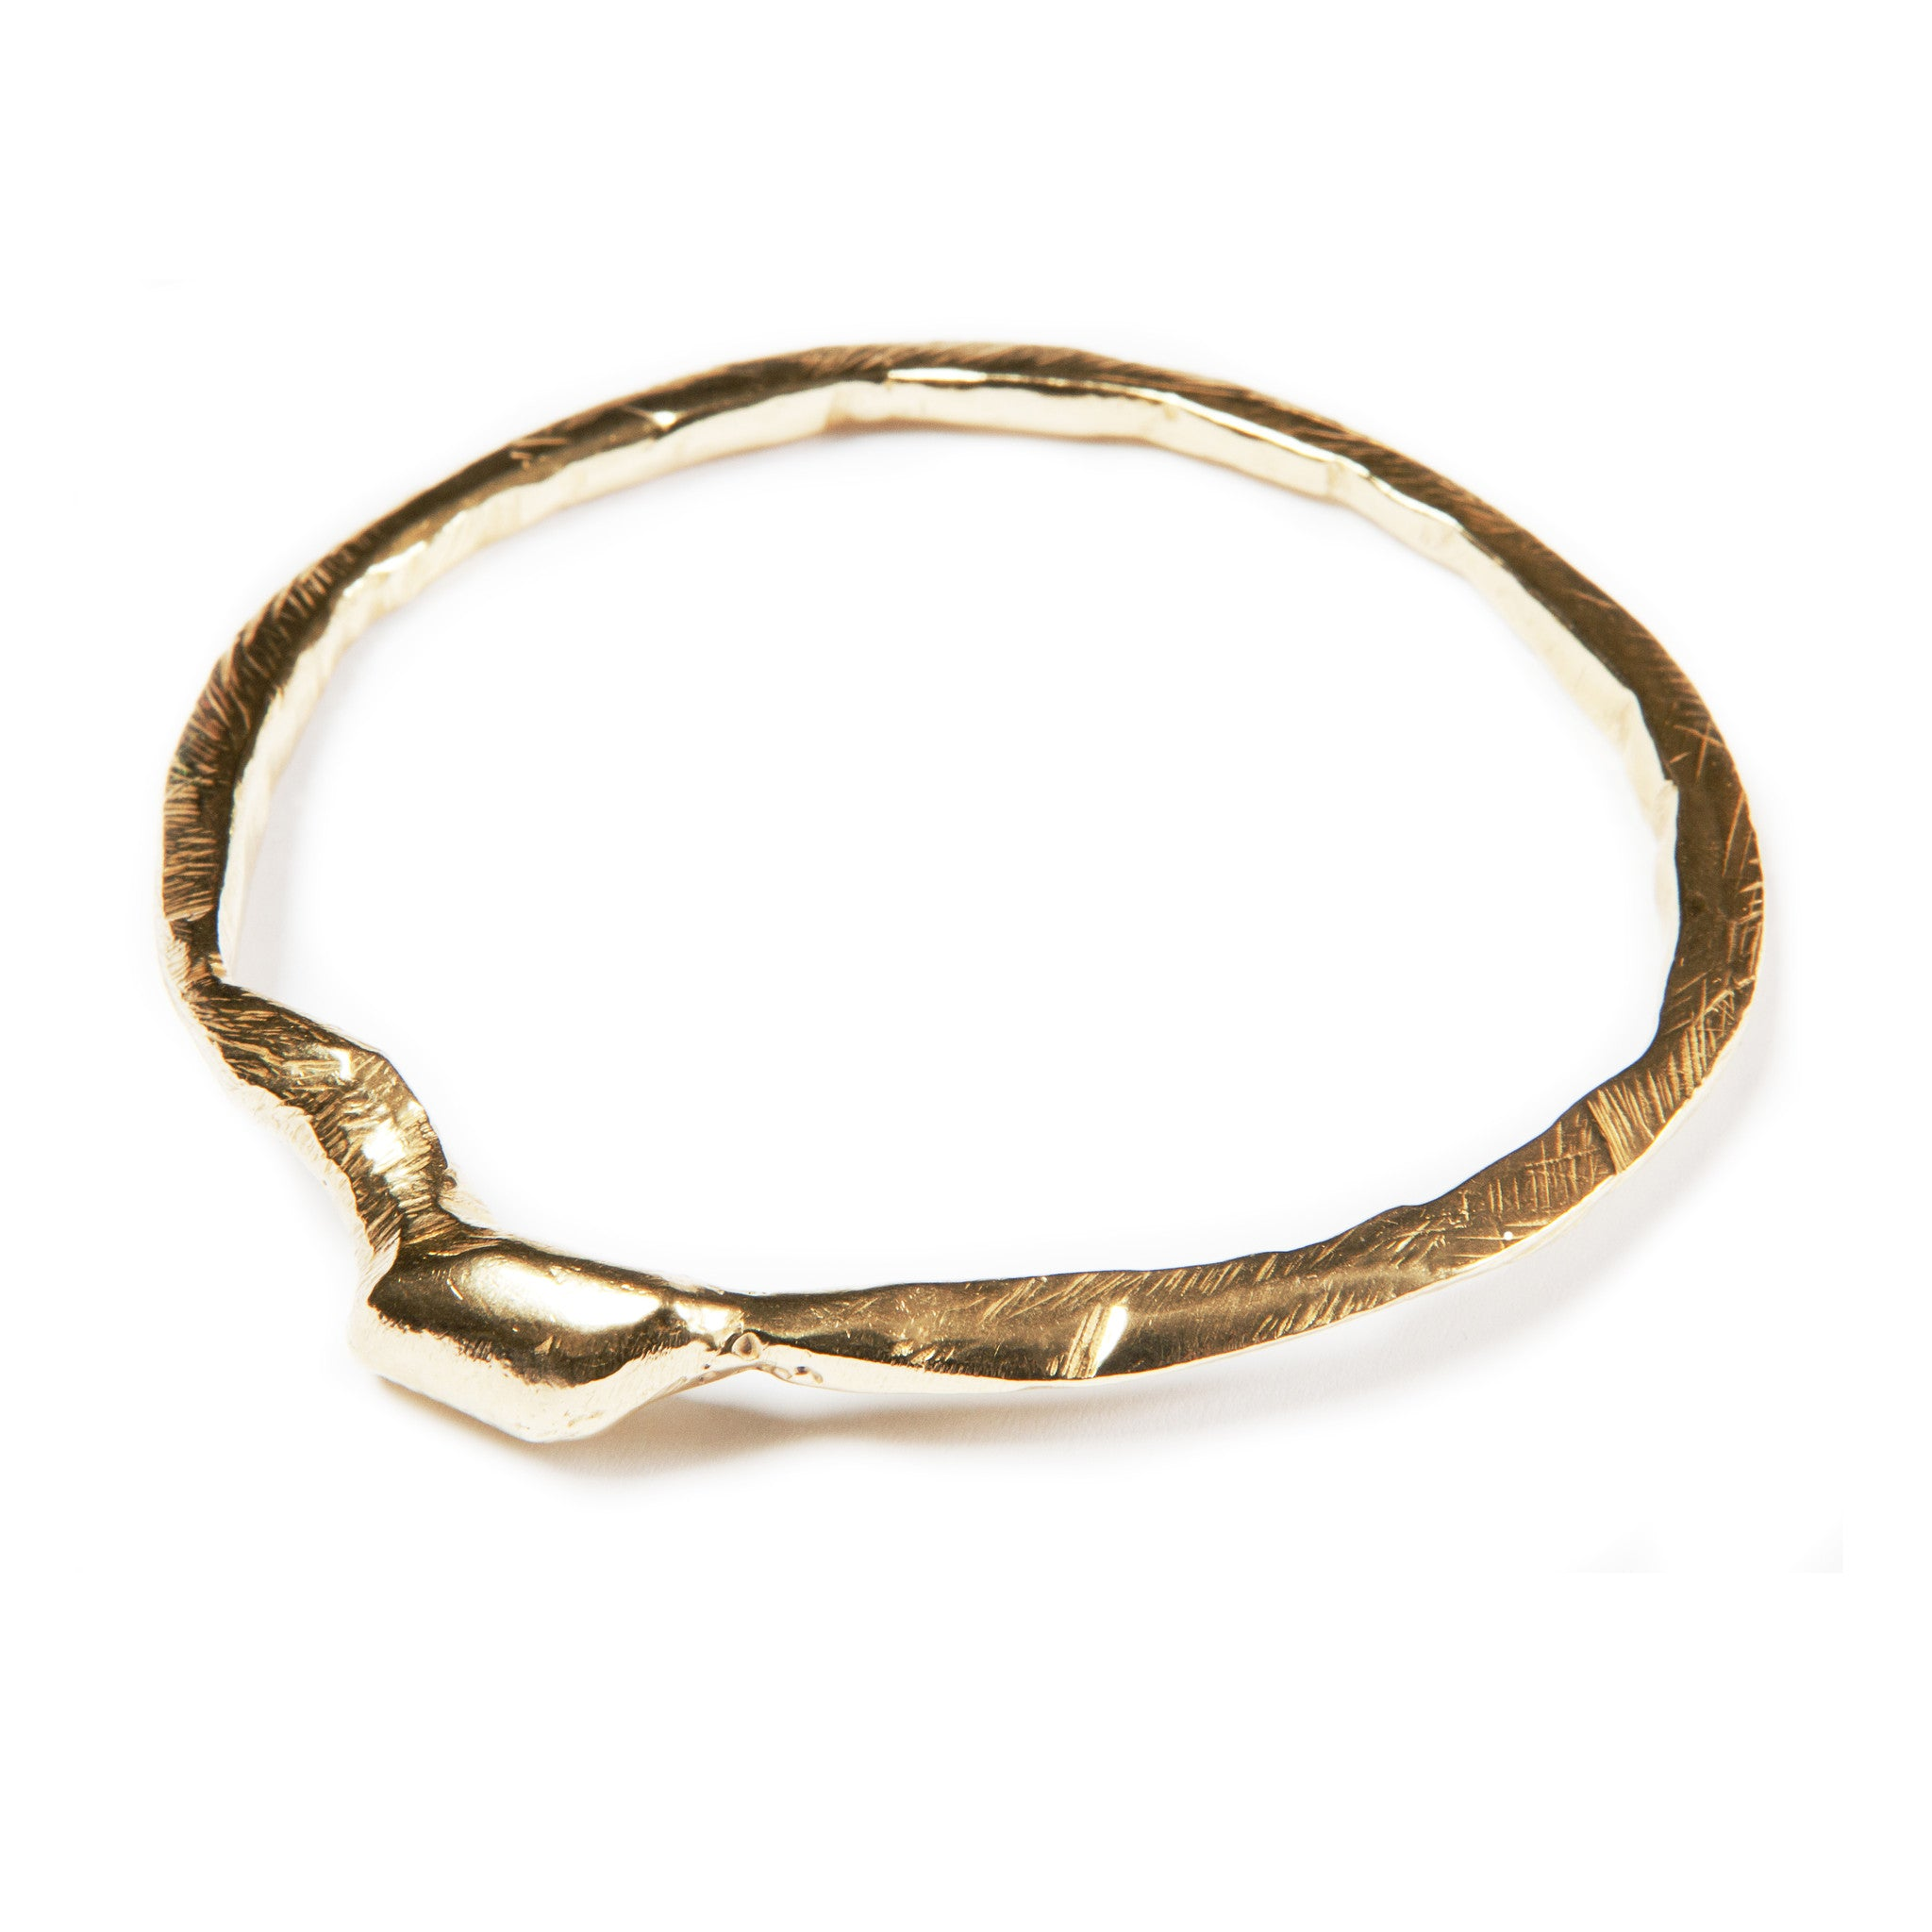 Gnarled Bangle